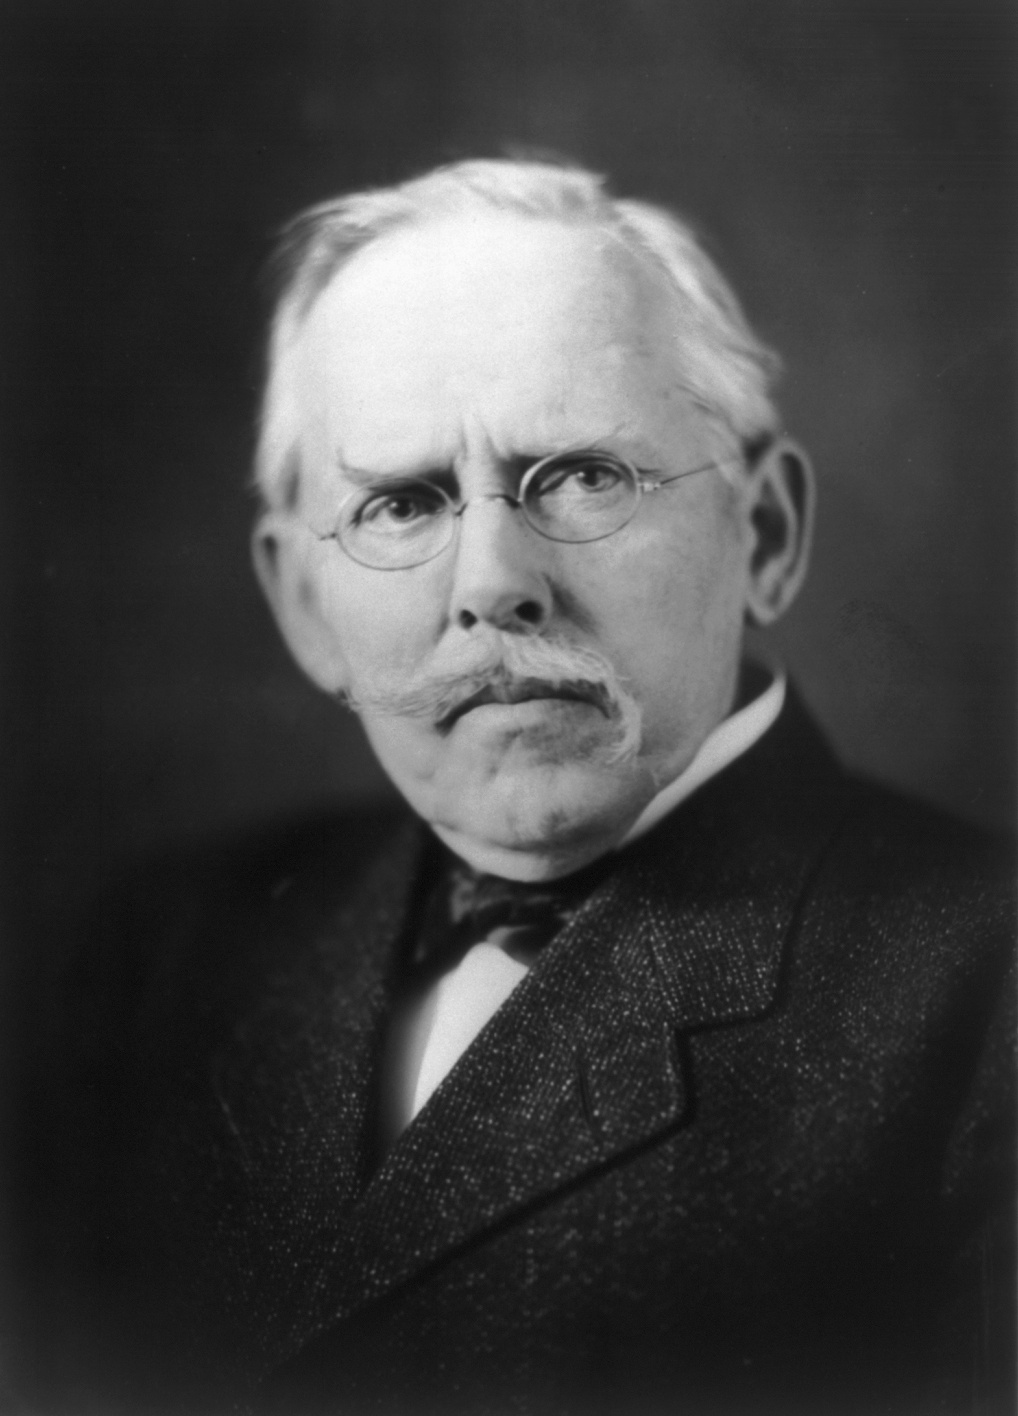 http://upload.wikimedia.org/wikipedia/commons/2/2d/Jacob_Riis_2.jpg